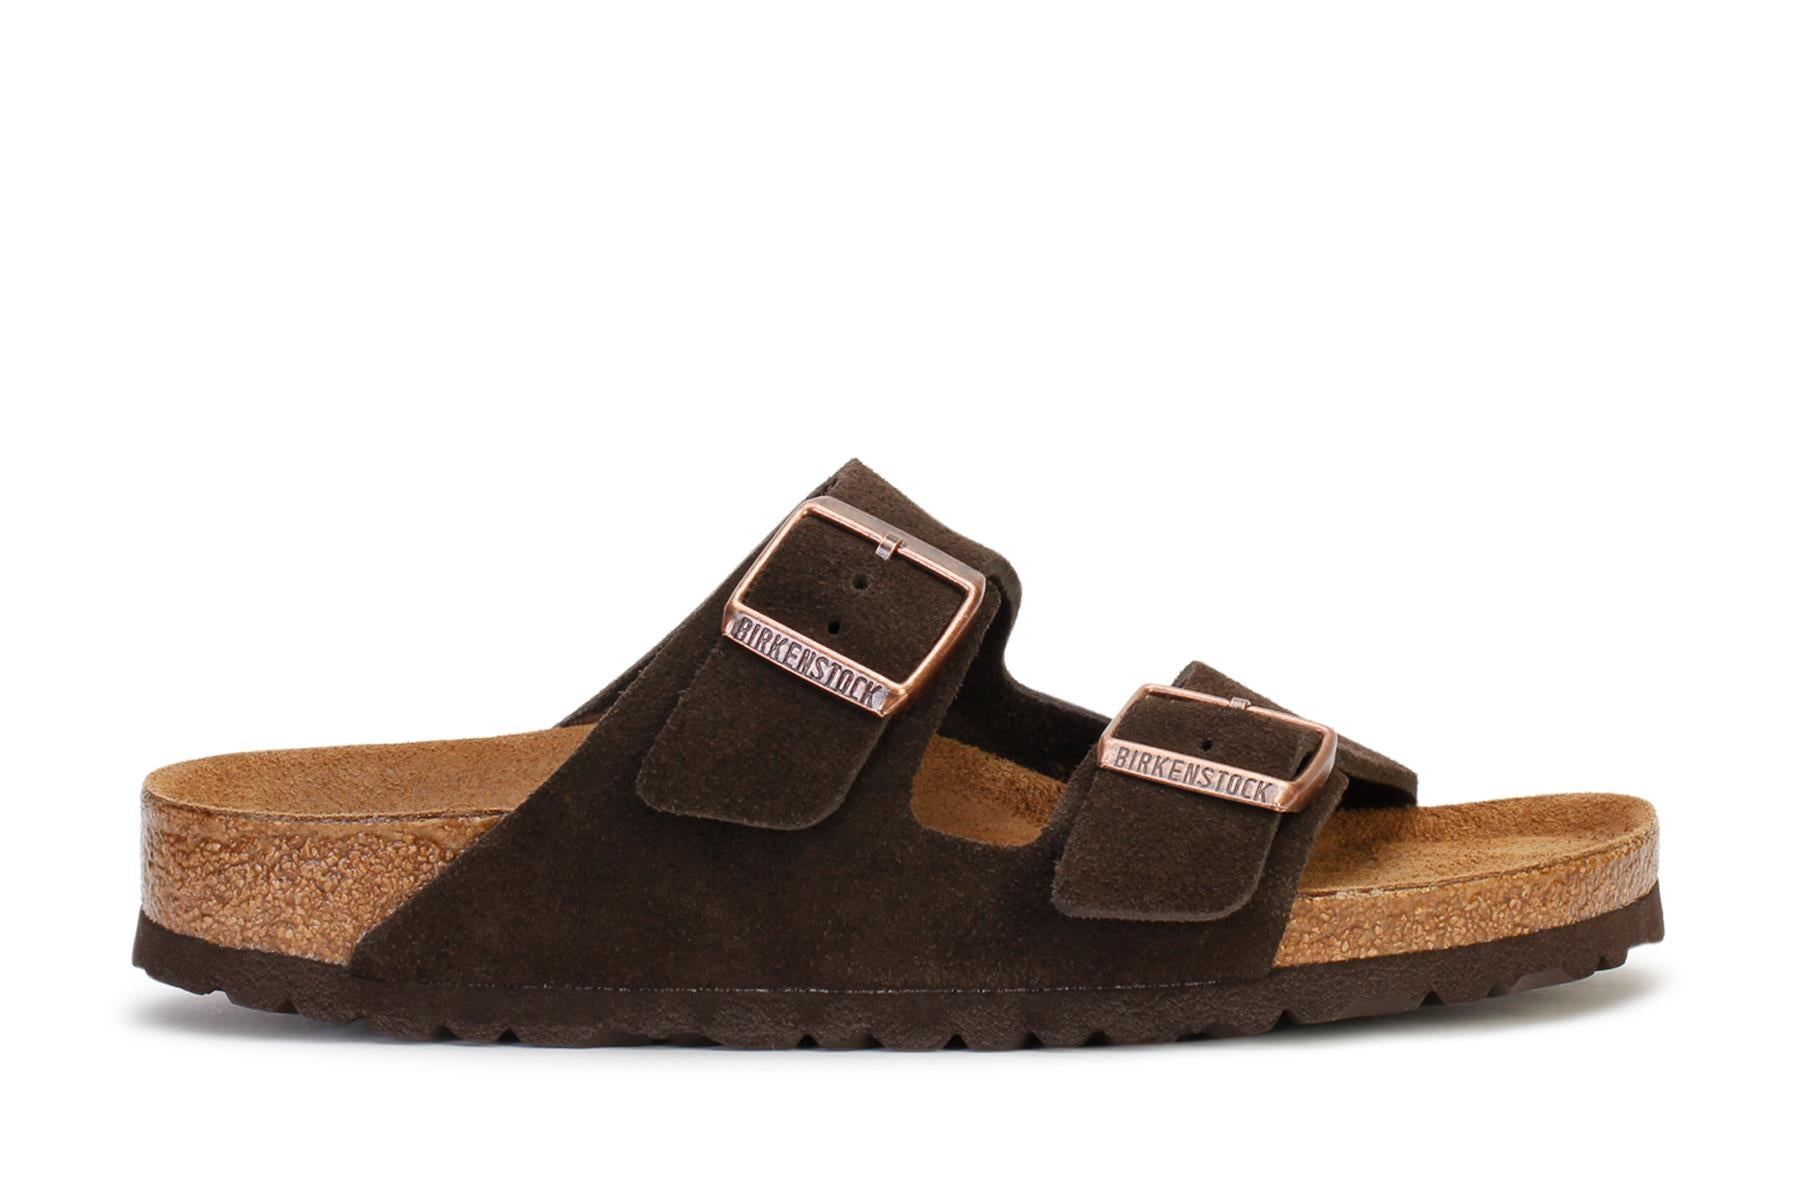 birkenstock-mens-slide-sandals-arizona-soft-footbed-mocha-suede-951311-main